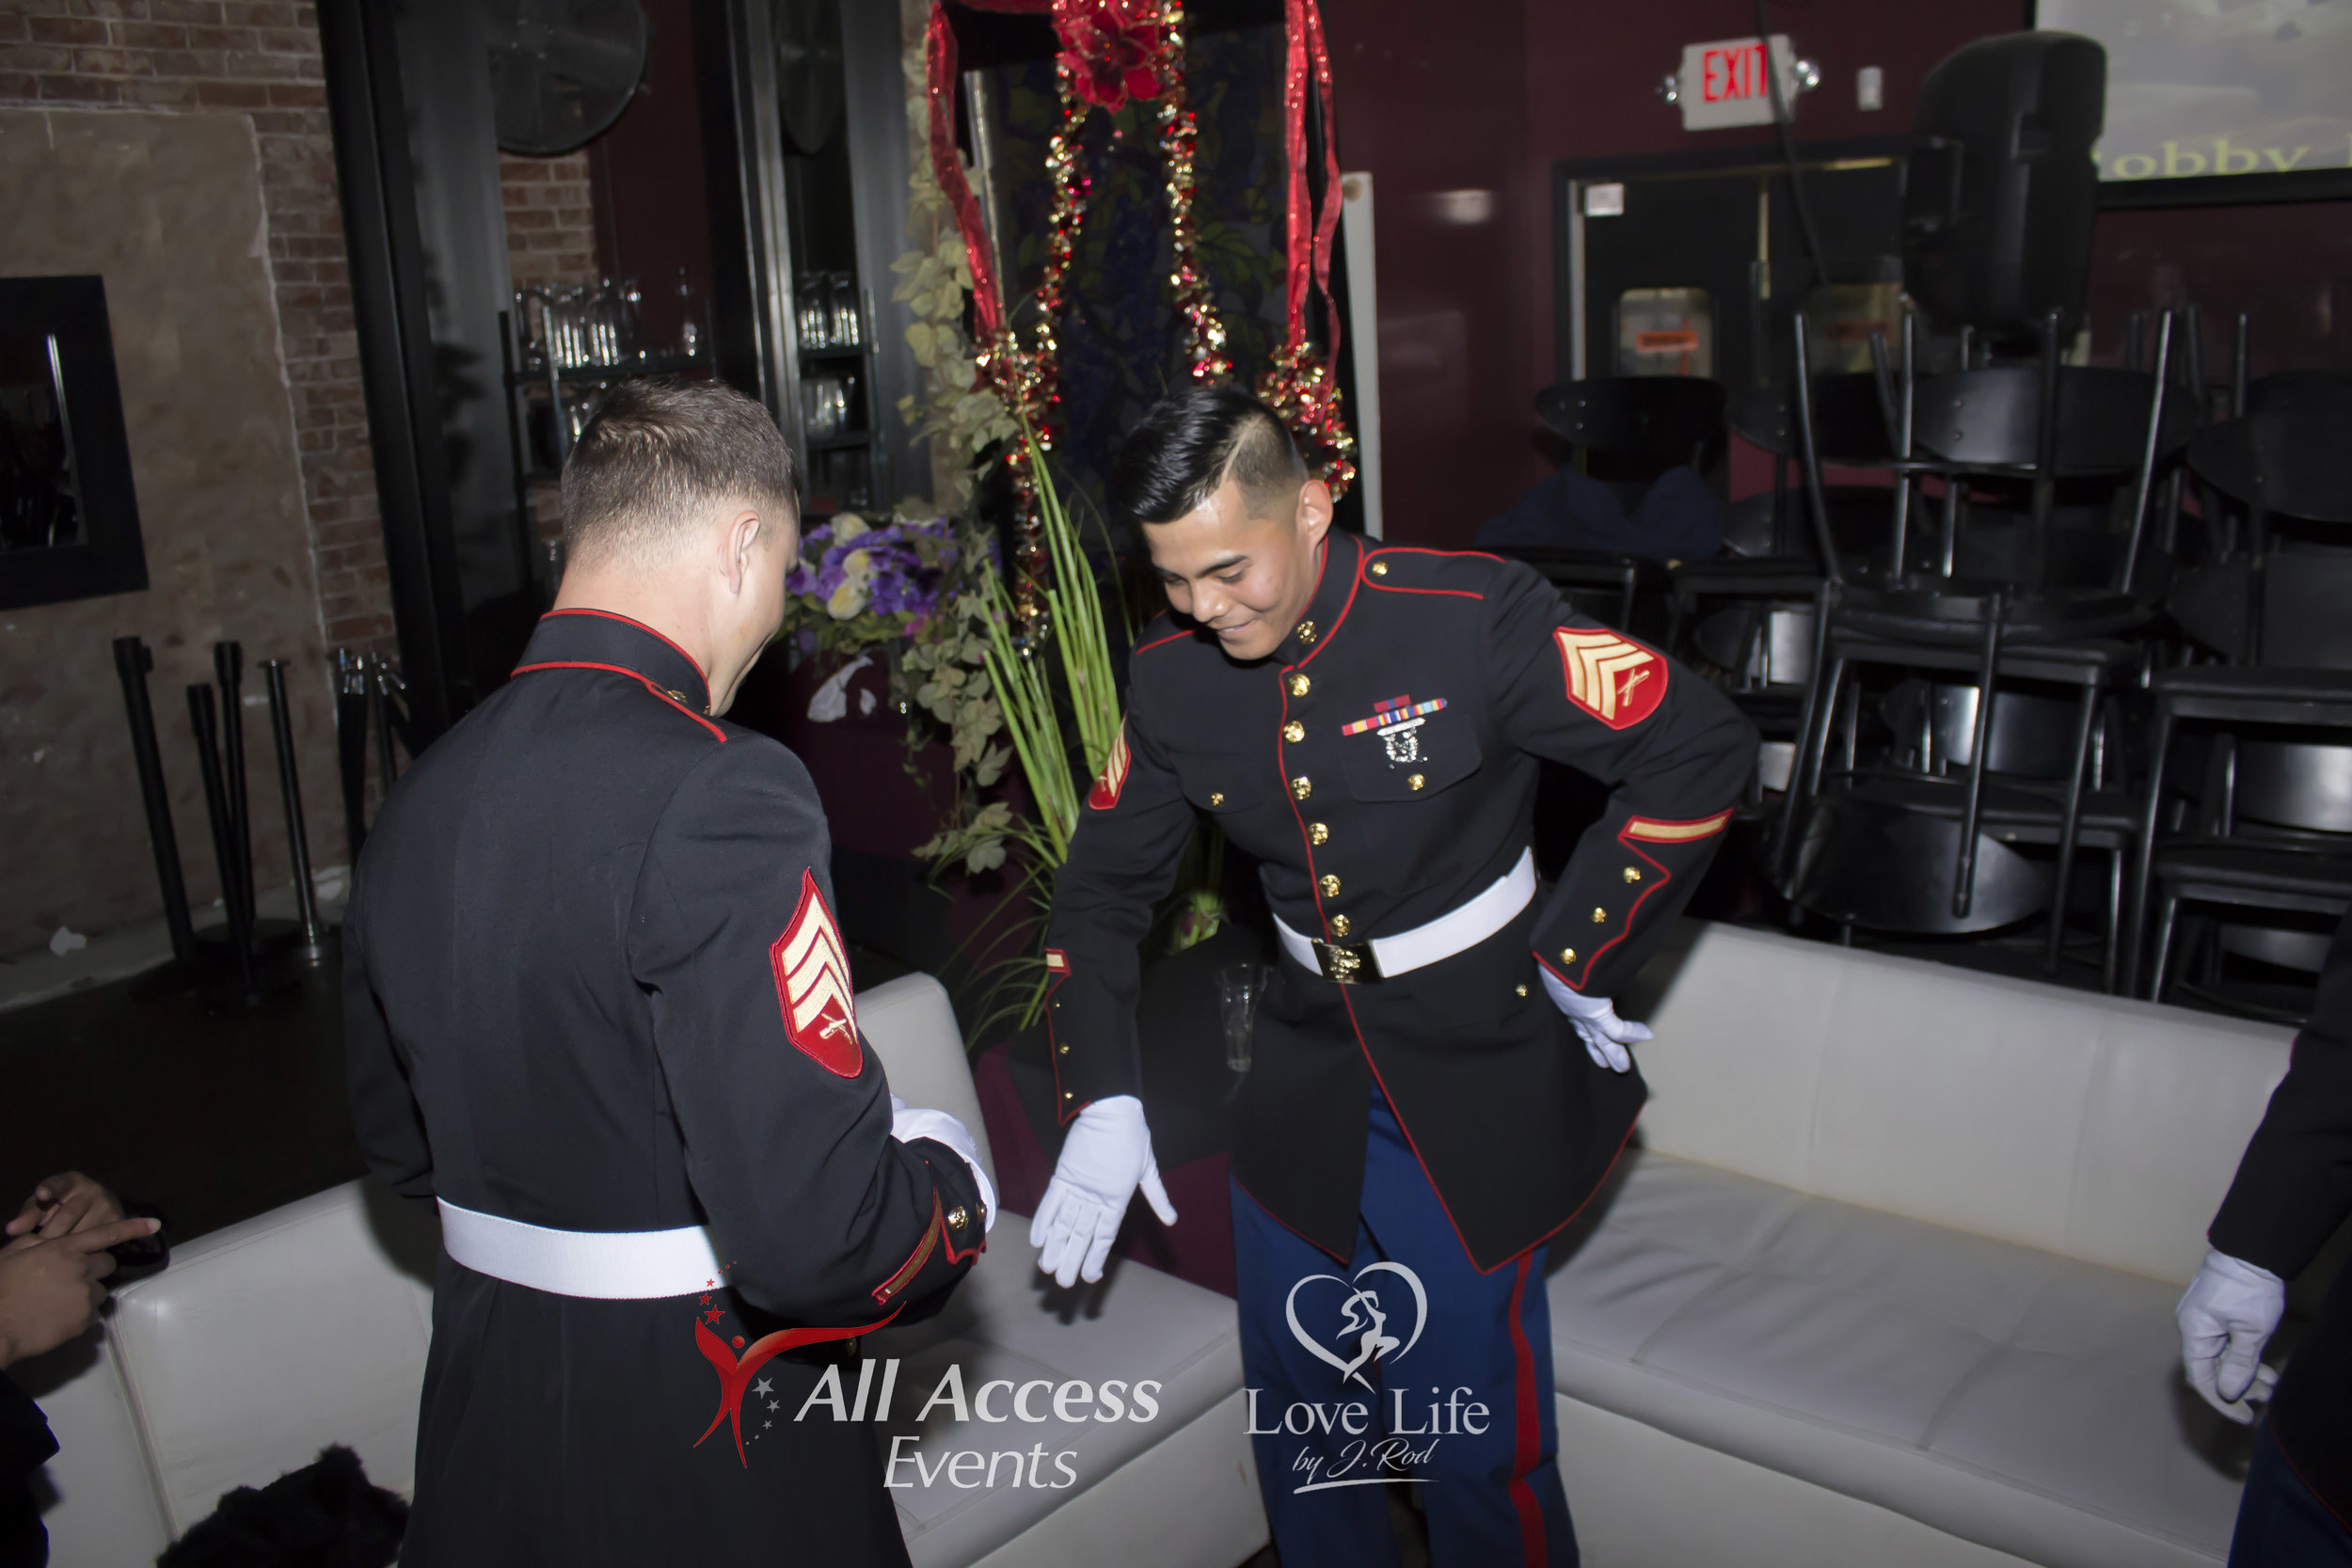 All Access Events Toy Drive - 12-13-17_52.jpg